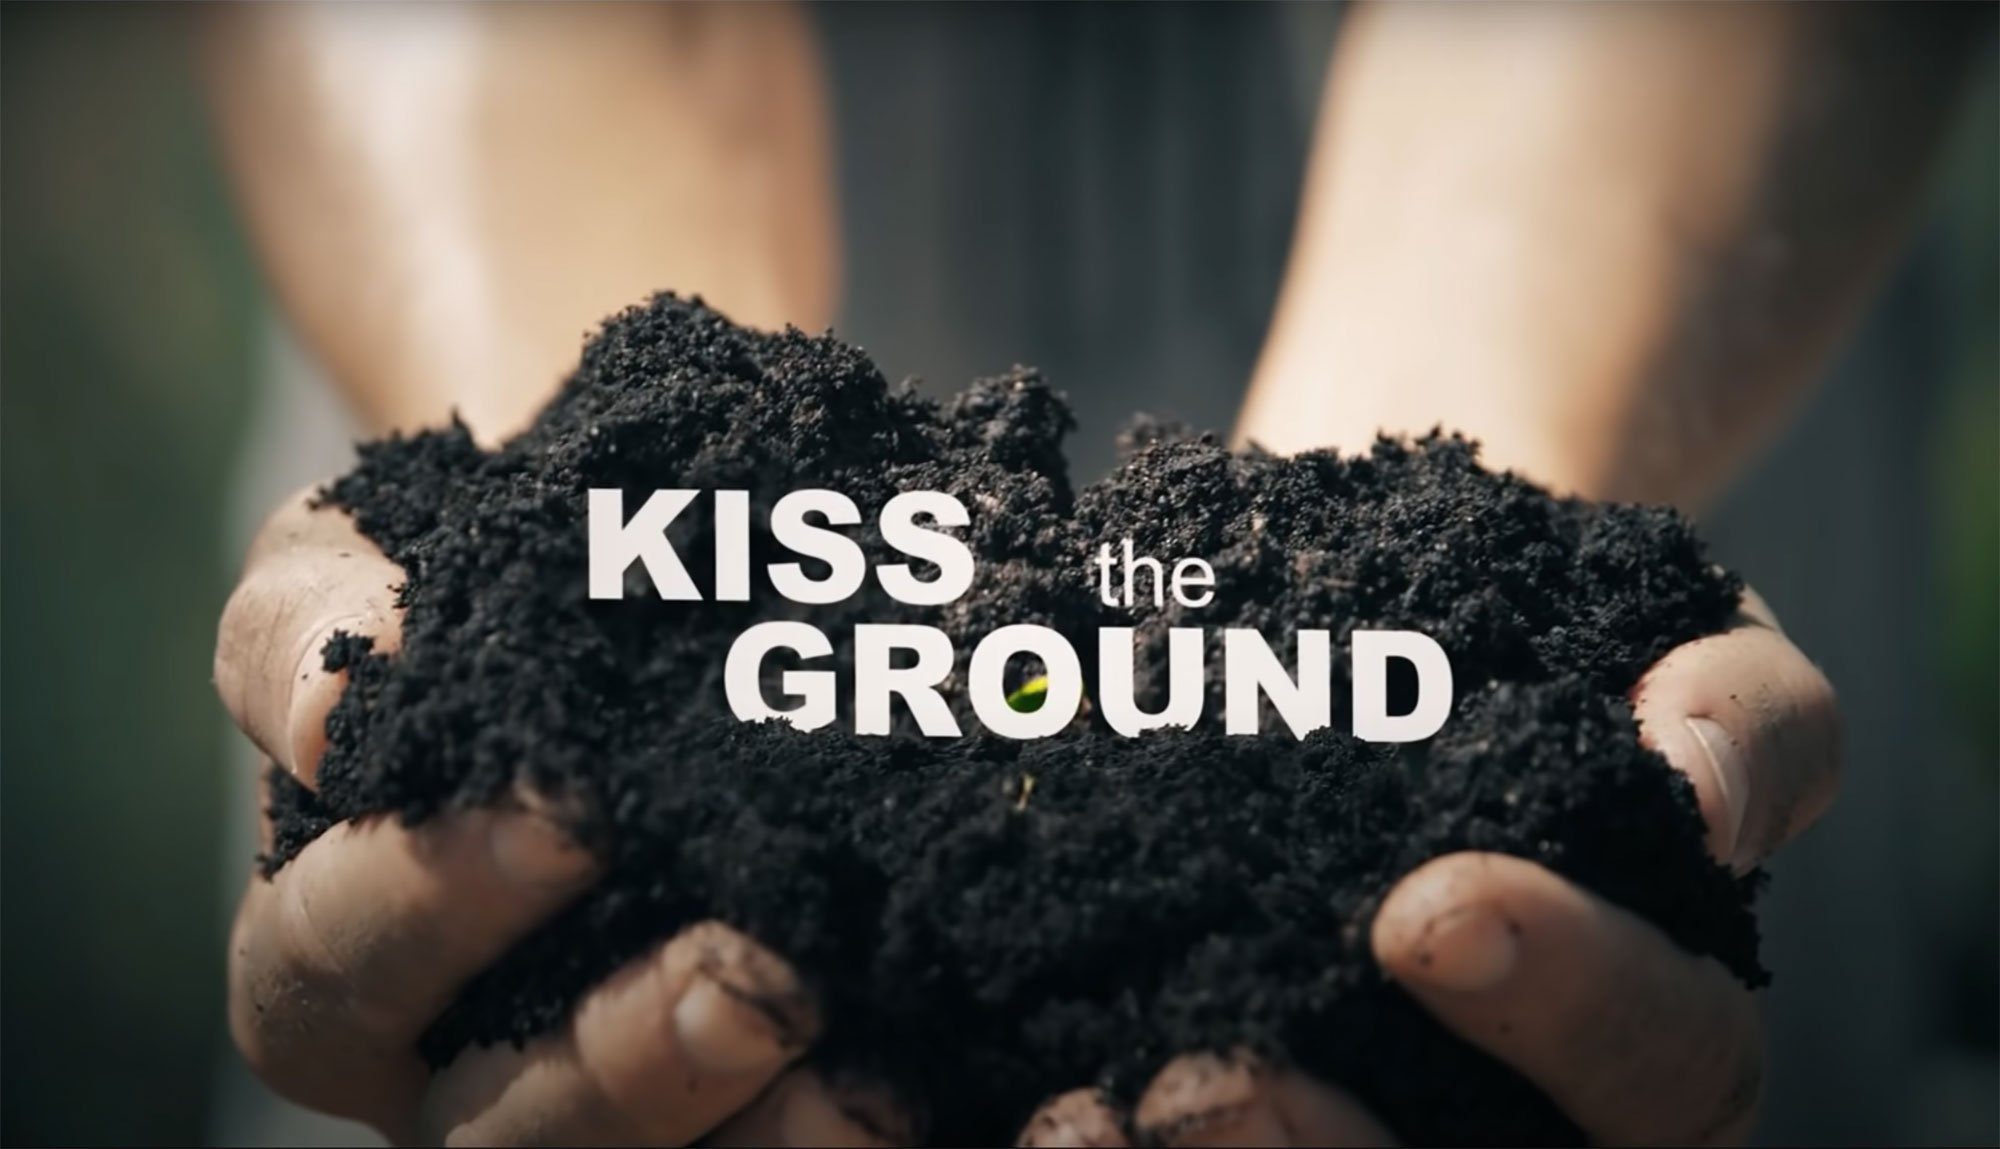 Kiss the Ground (film discussion)